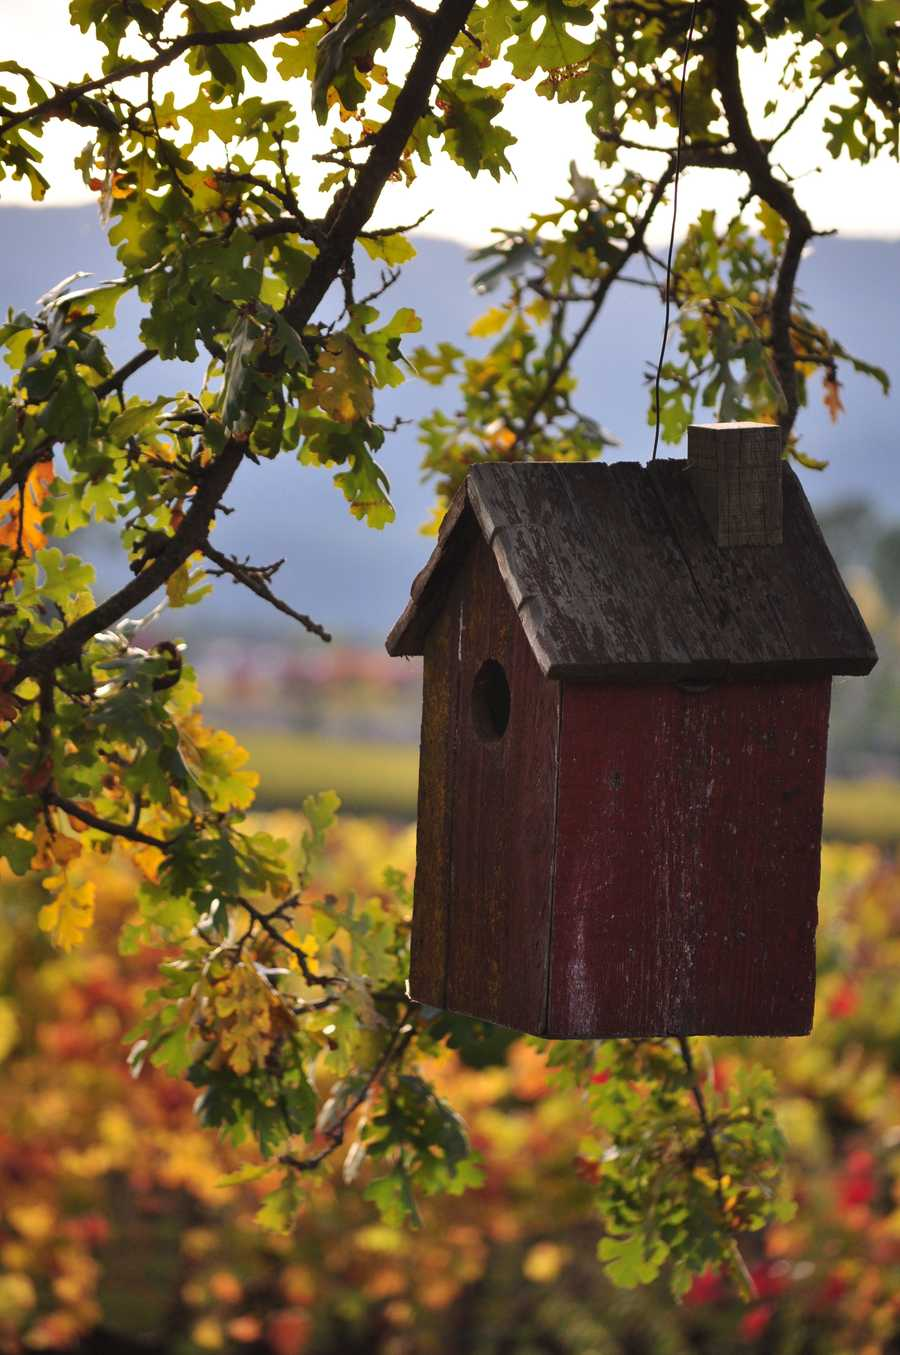 17. The region nets about $10.128 billion annually in gross revenue from its wine.